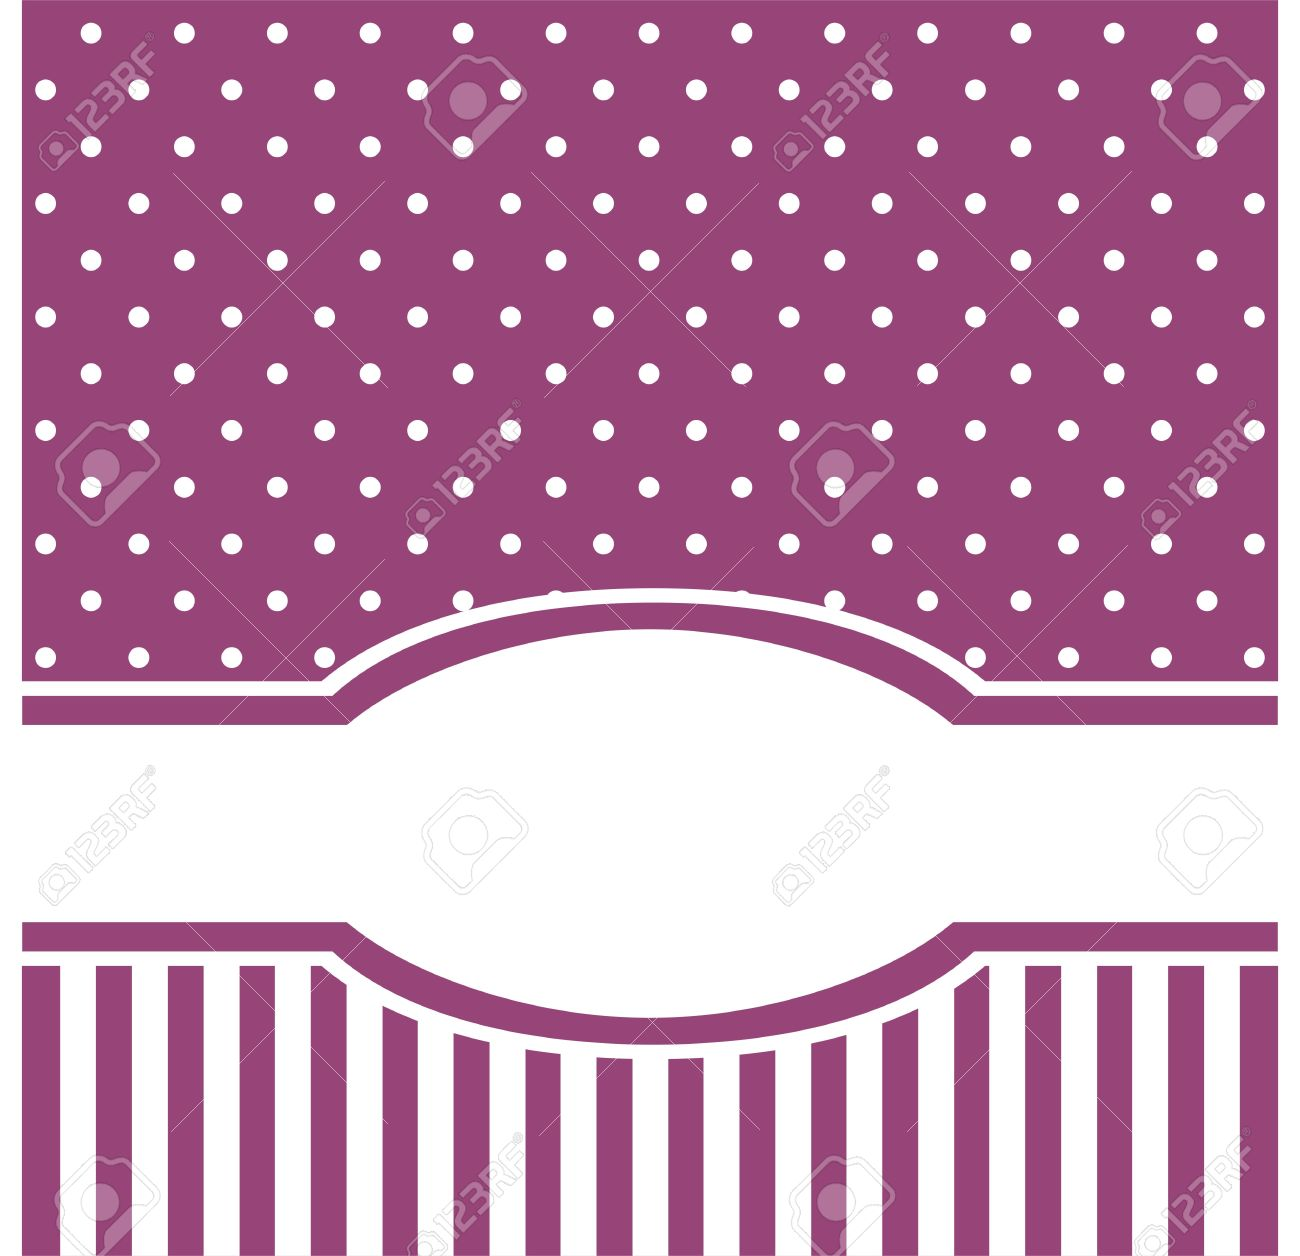 Card Or Invitation With White Polka Dots Cute Background With